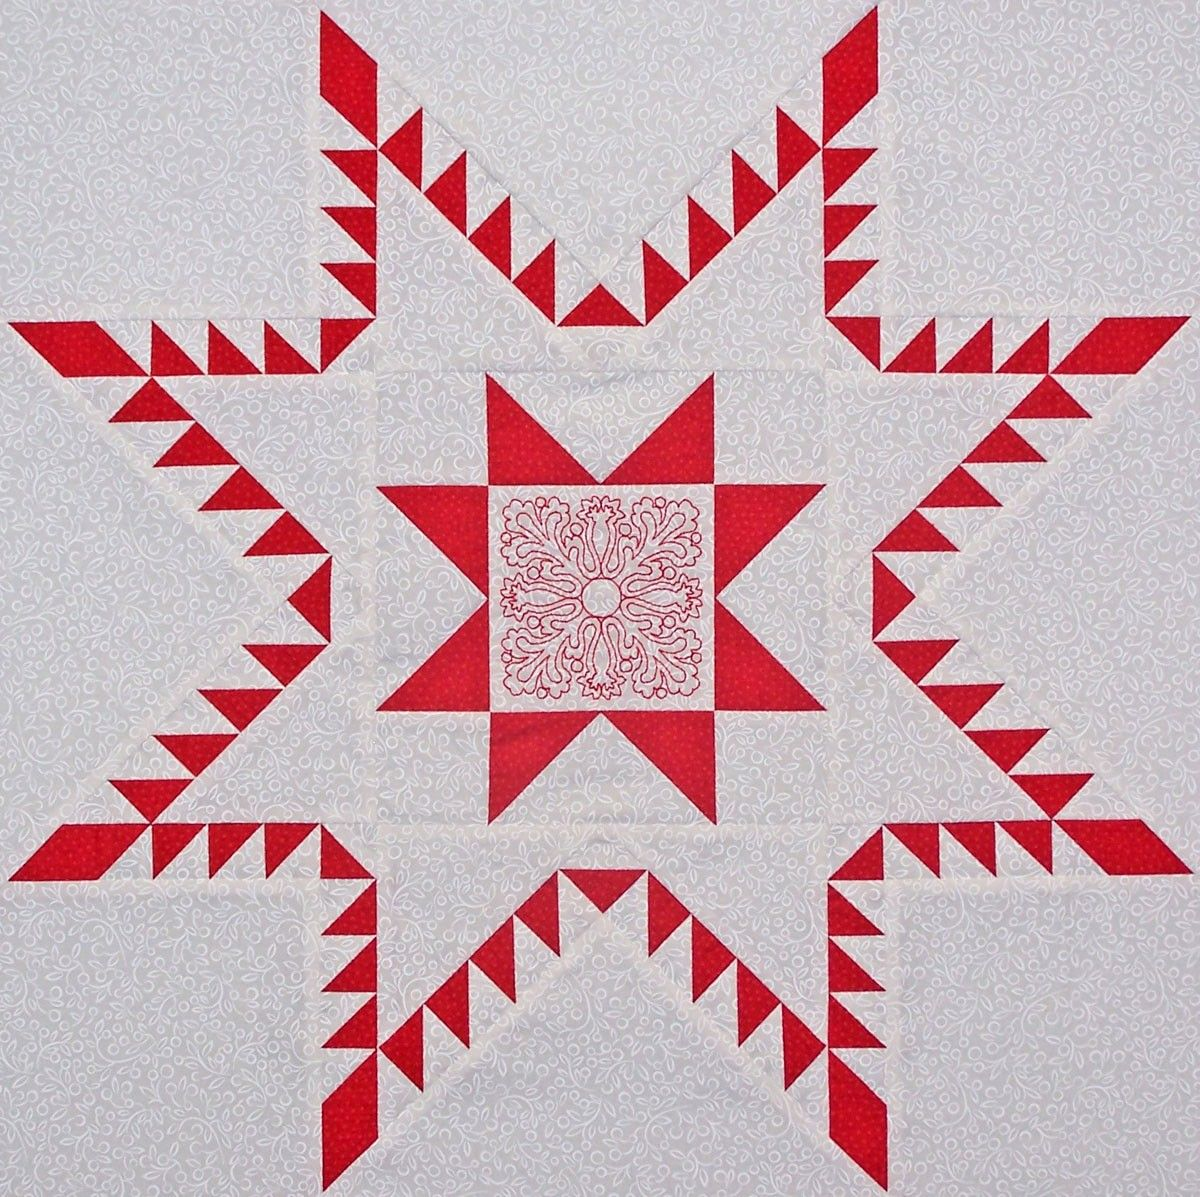 Aurora Feathered Star Quilt Block Tutorial Quilting